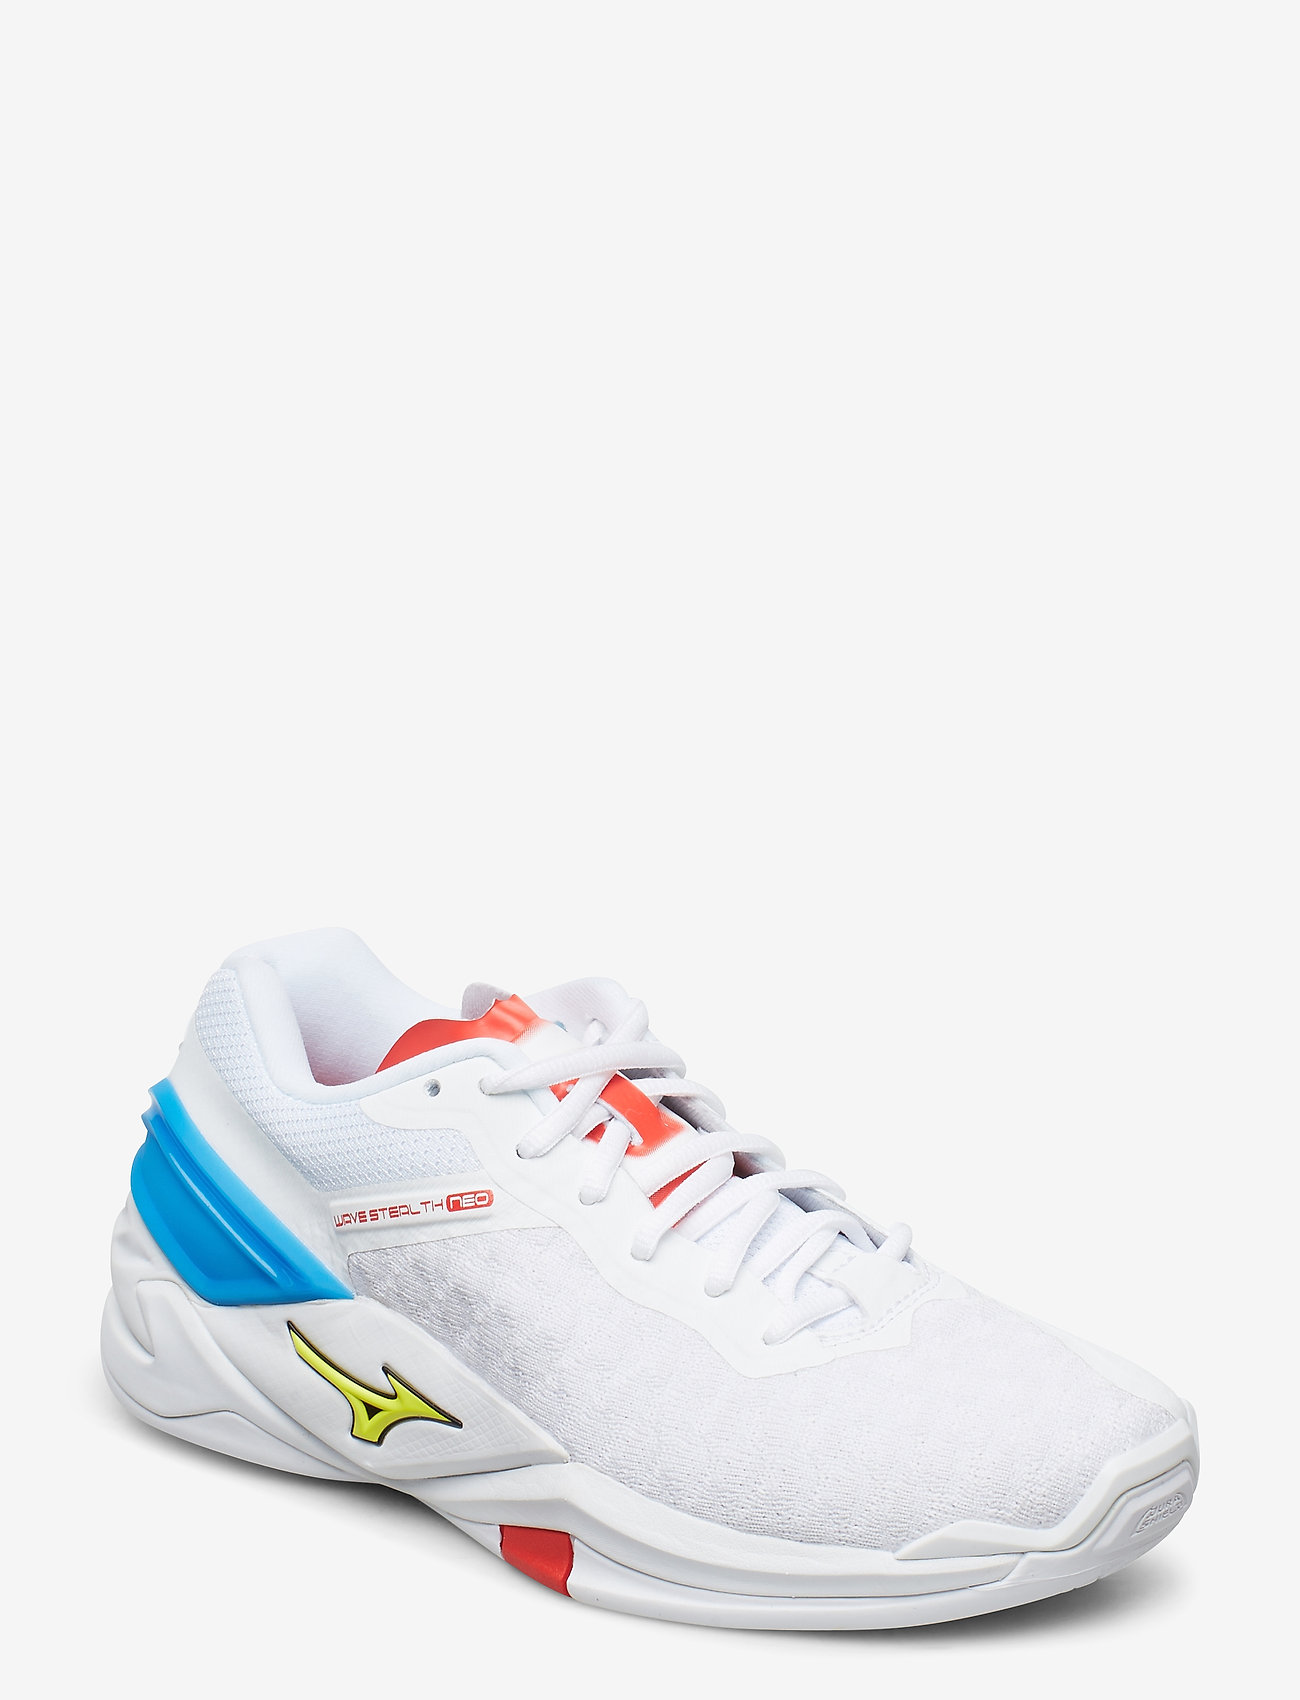 Wave Stealth Neo (White / Safety Yelow